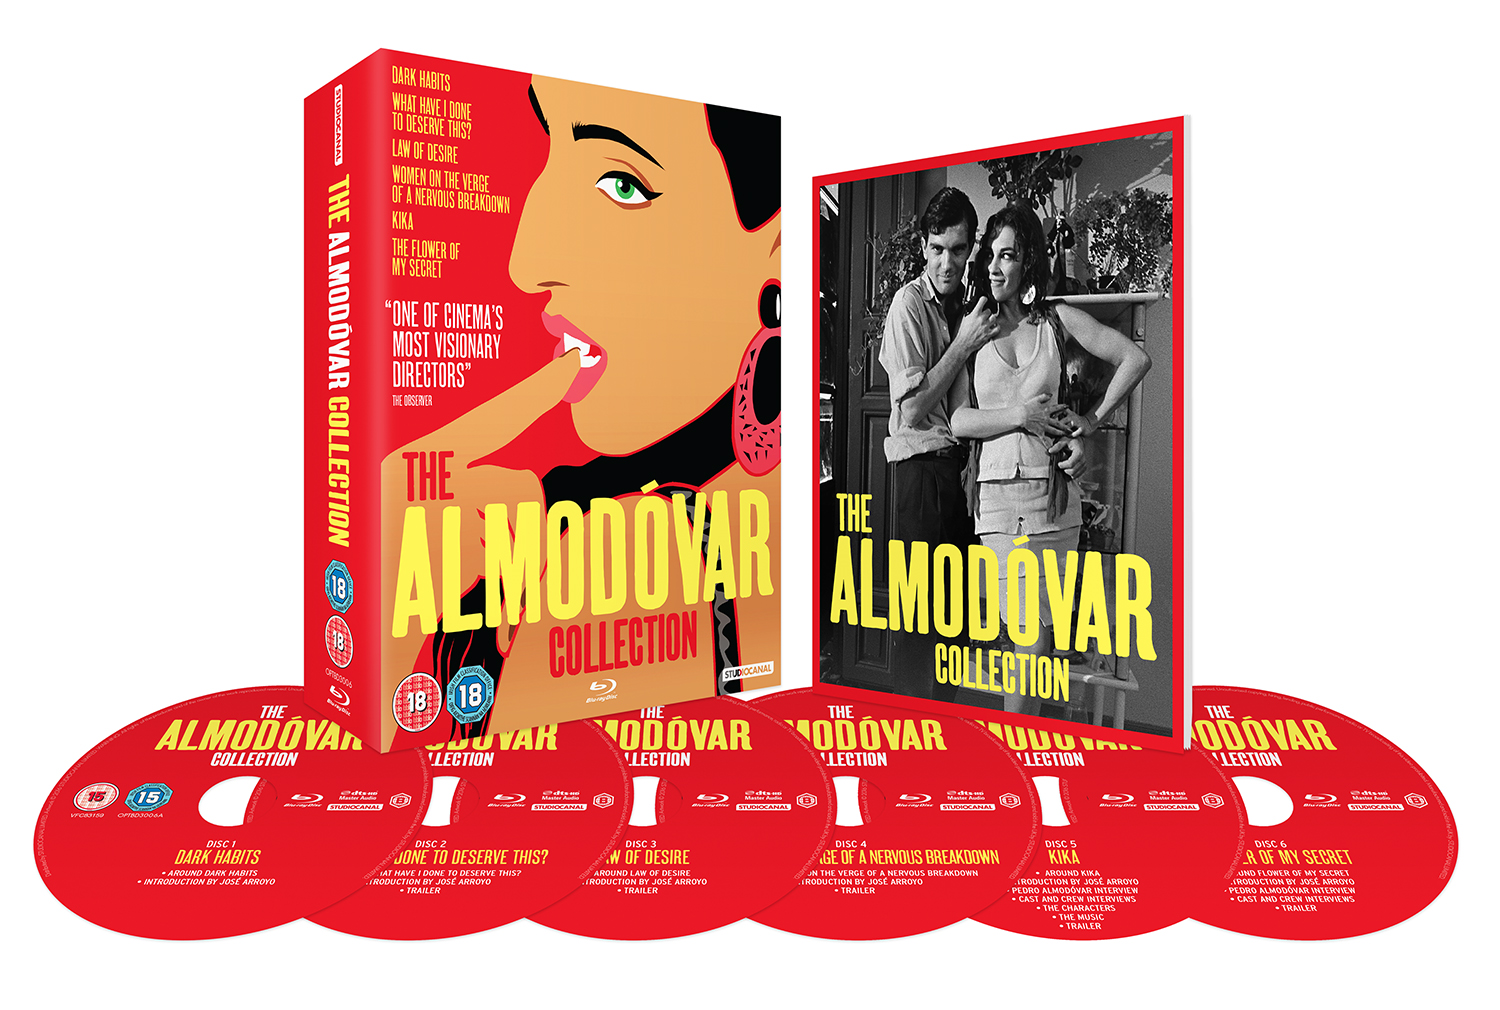 almodovar_bd_exploded_packshot